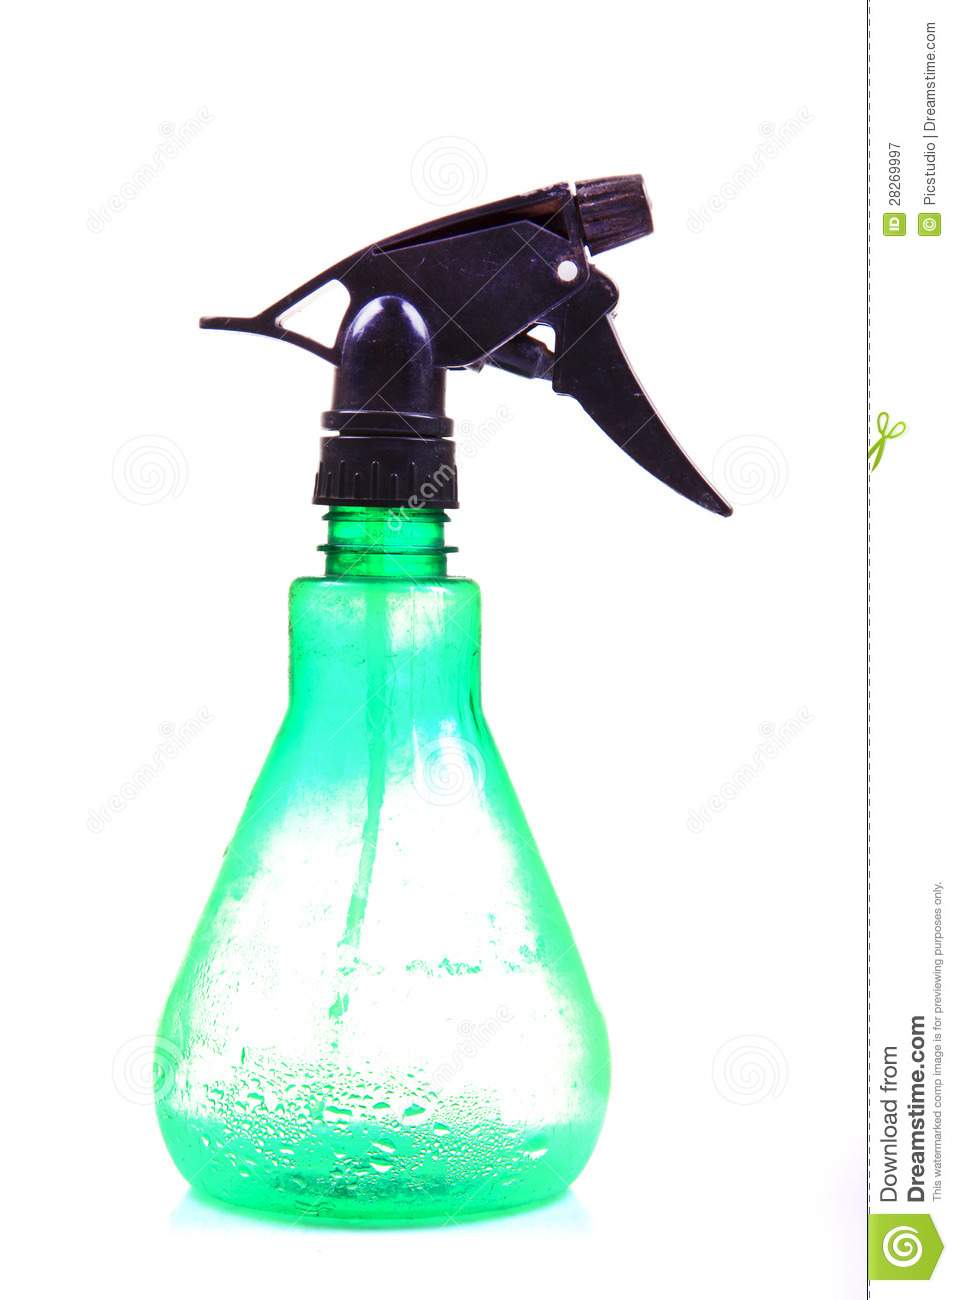 Garden Insecticide Sprayer Royalty Free Stock Photography Image